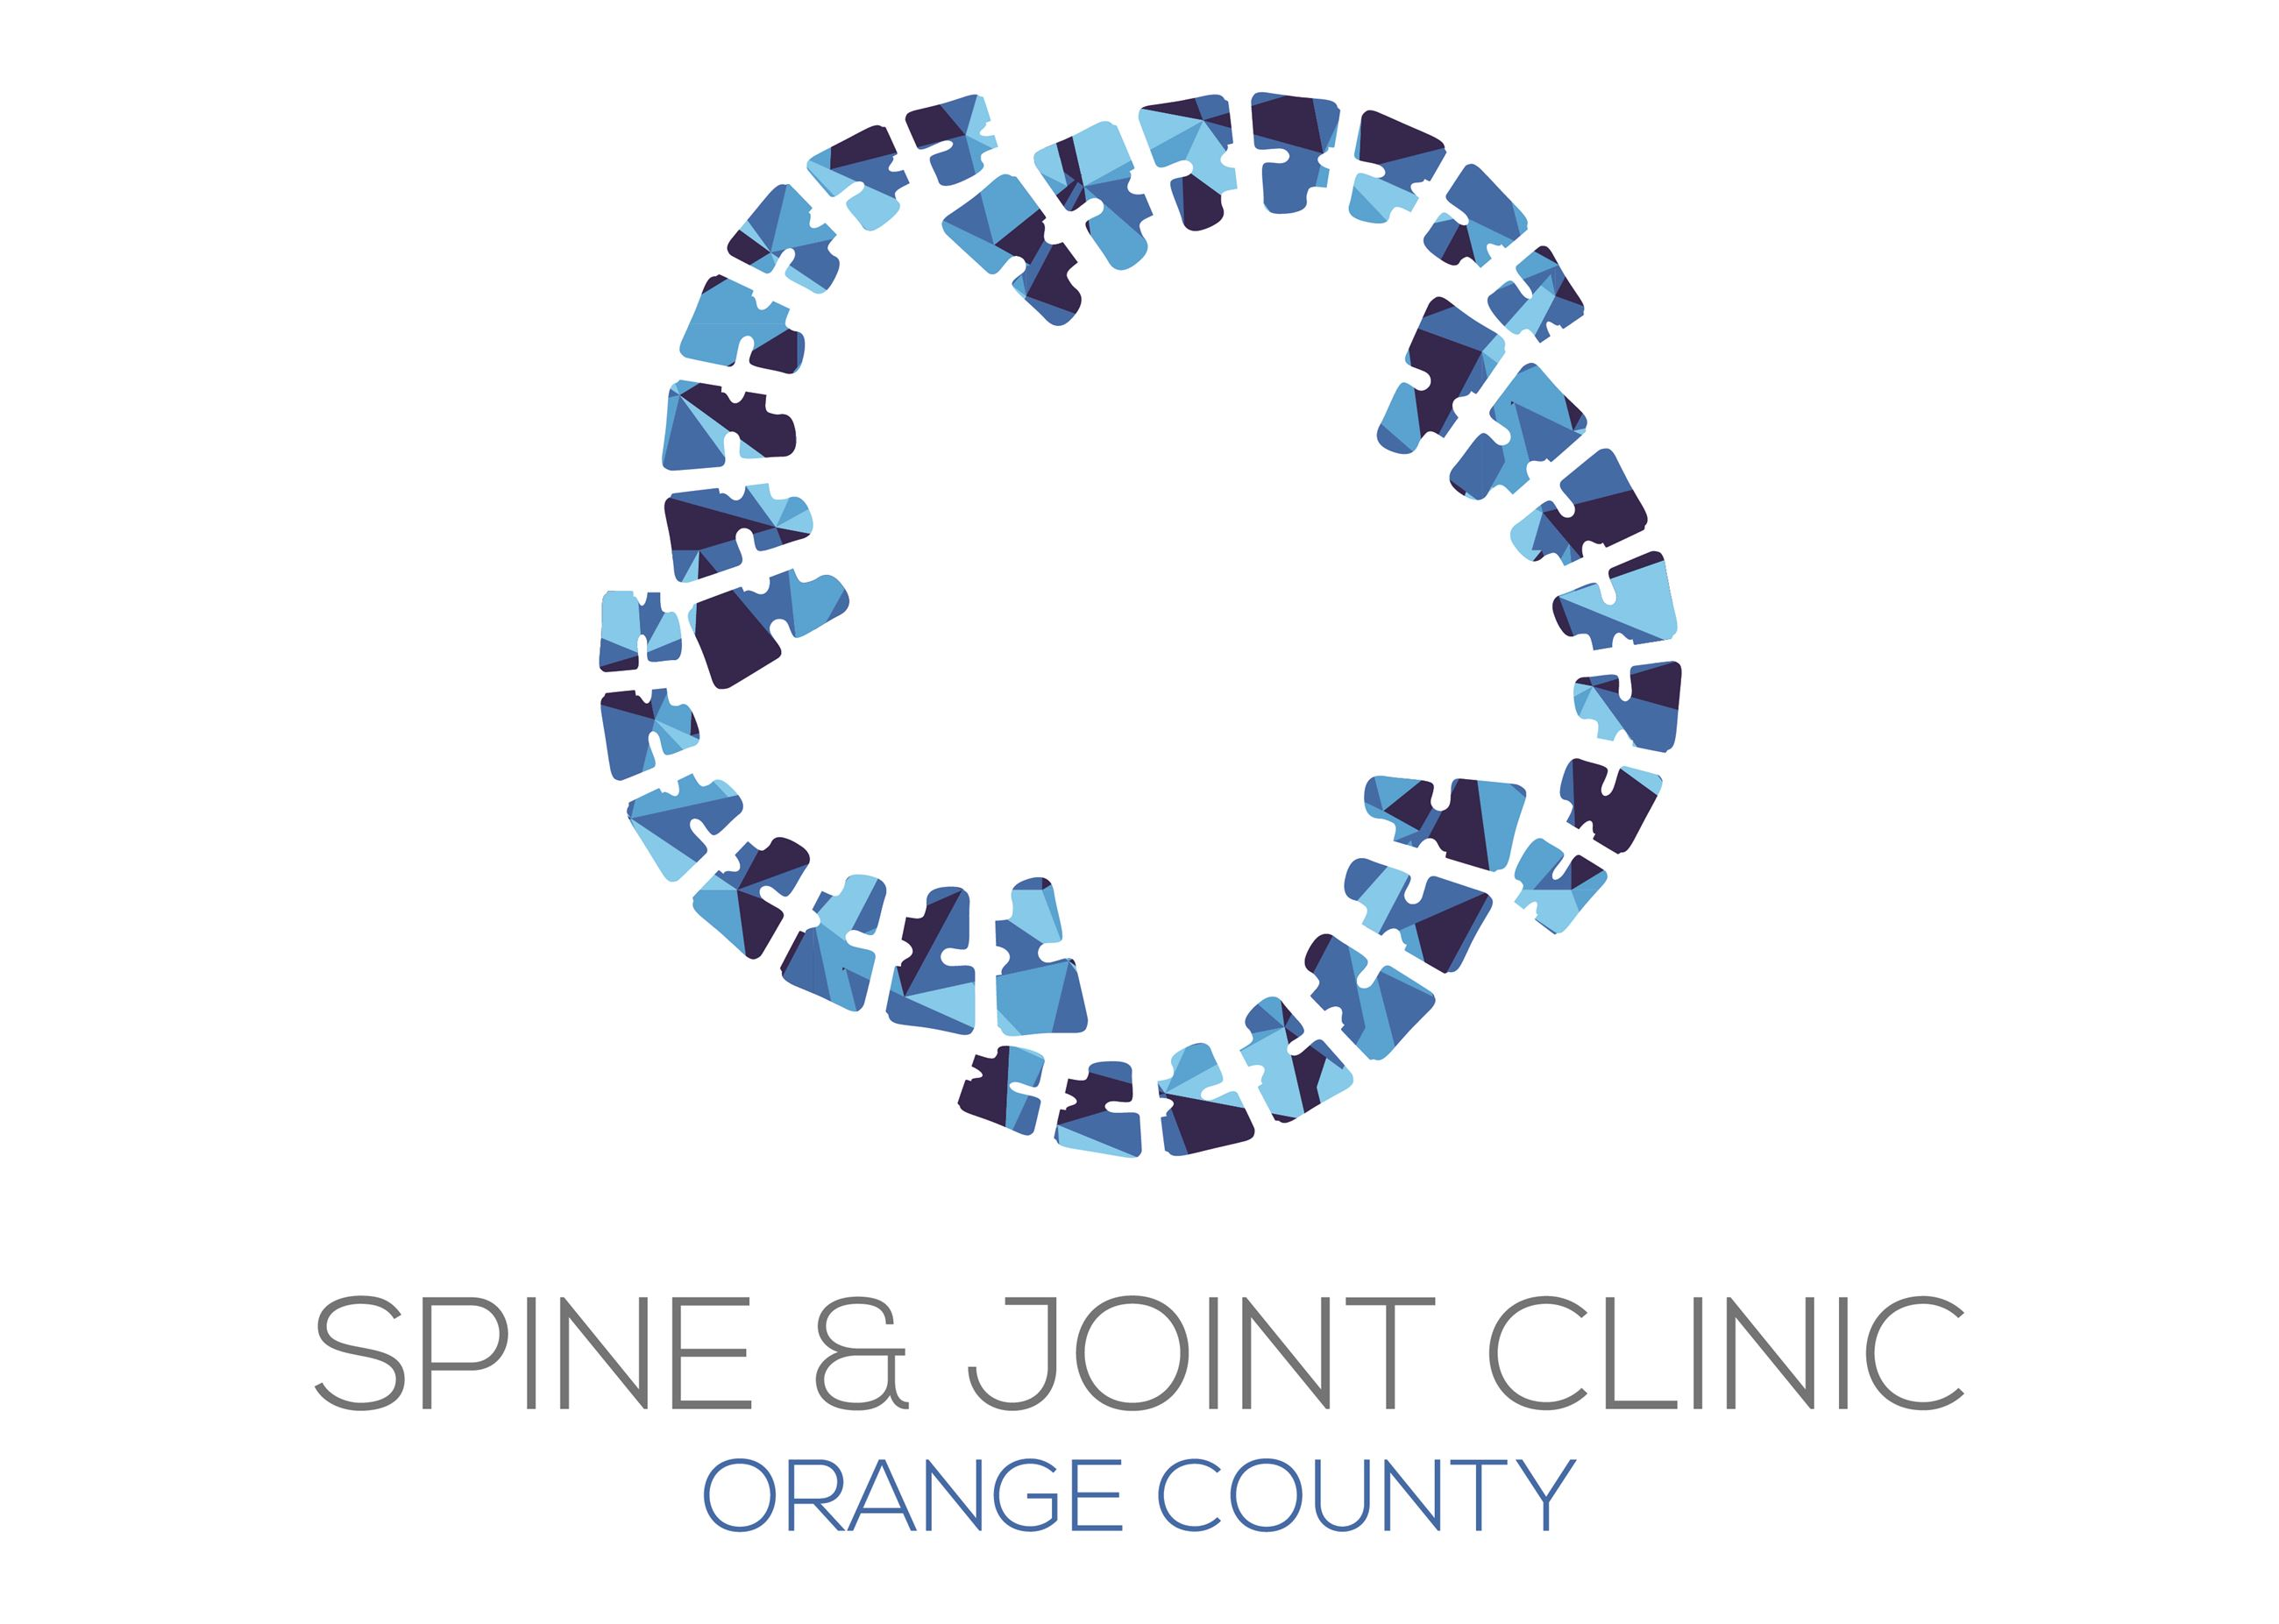 Spine and Joint Clinic OC